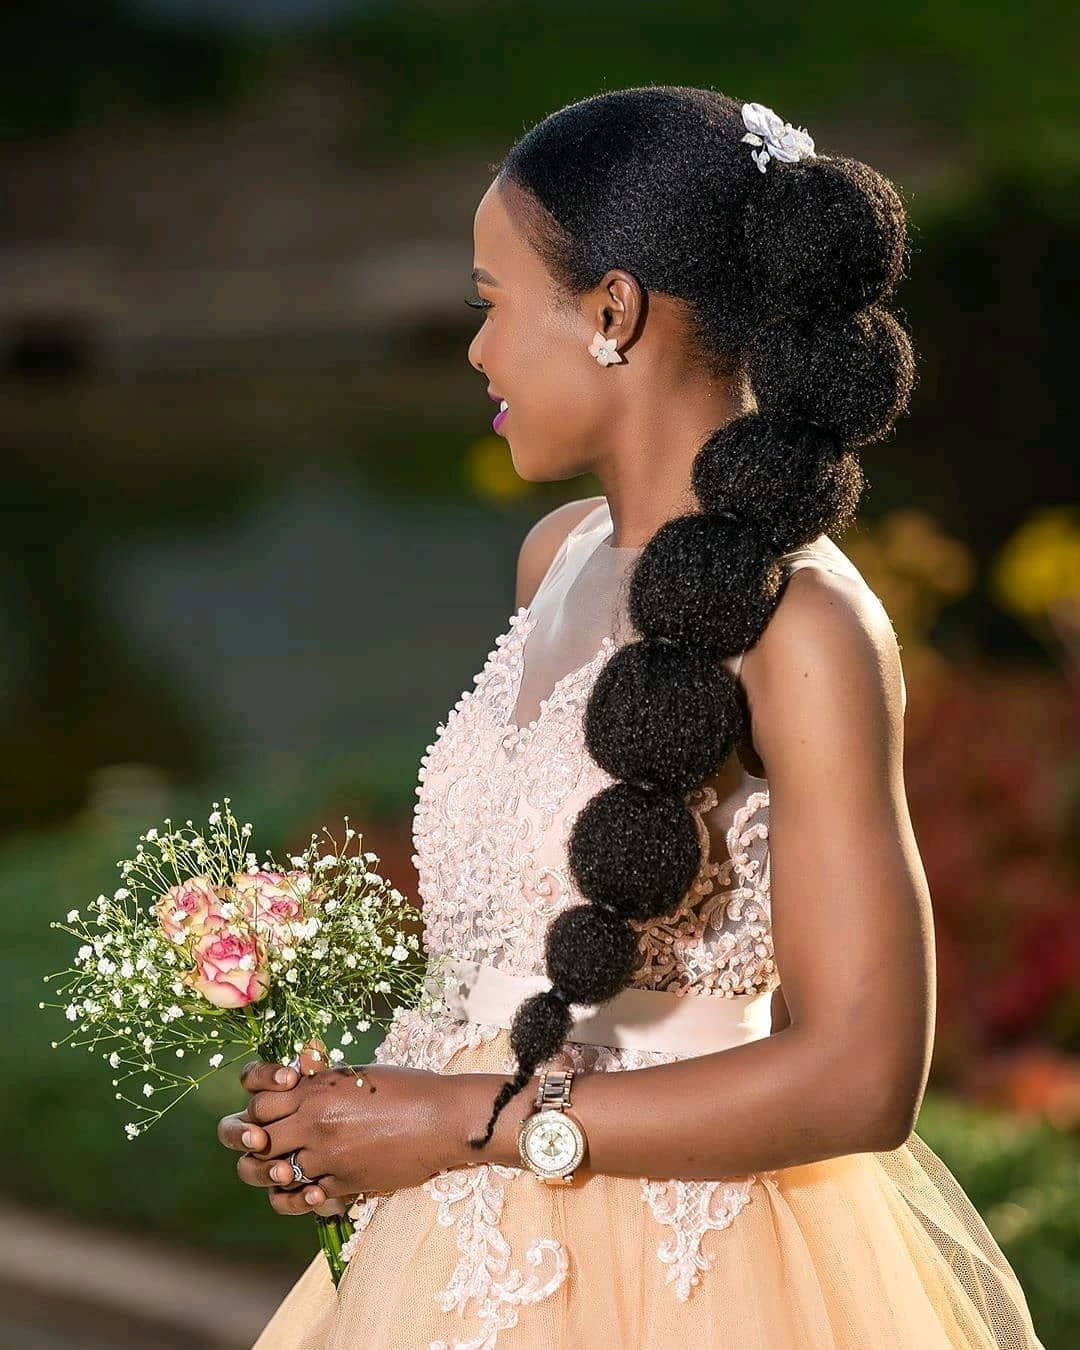 Bubble Pony Anyone Get This Look Using Only One Pack Of Our Afro Twist Marley Hair And Some Good Gel To Sleek Y Marley Hair Afro Twist Natural Hair Wedding